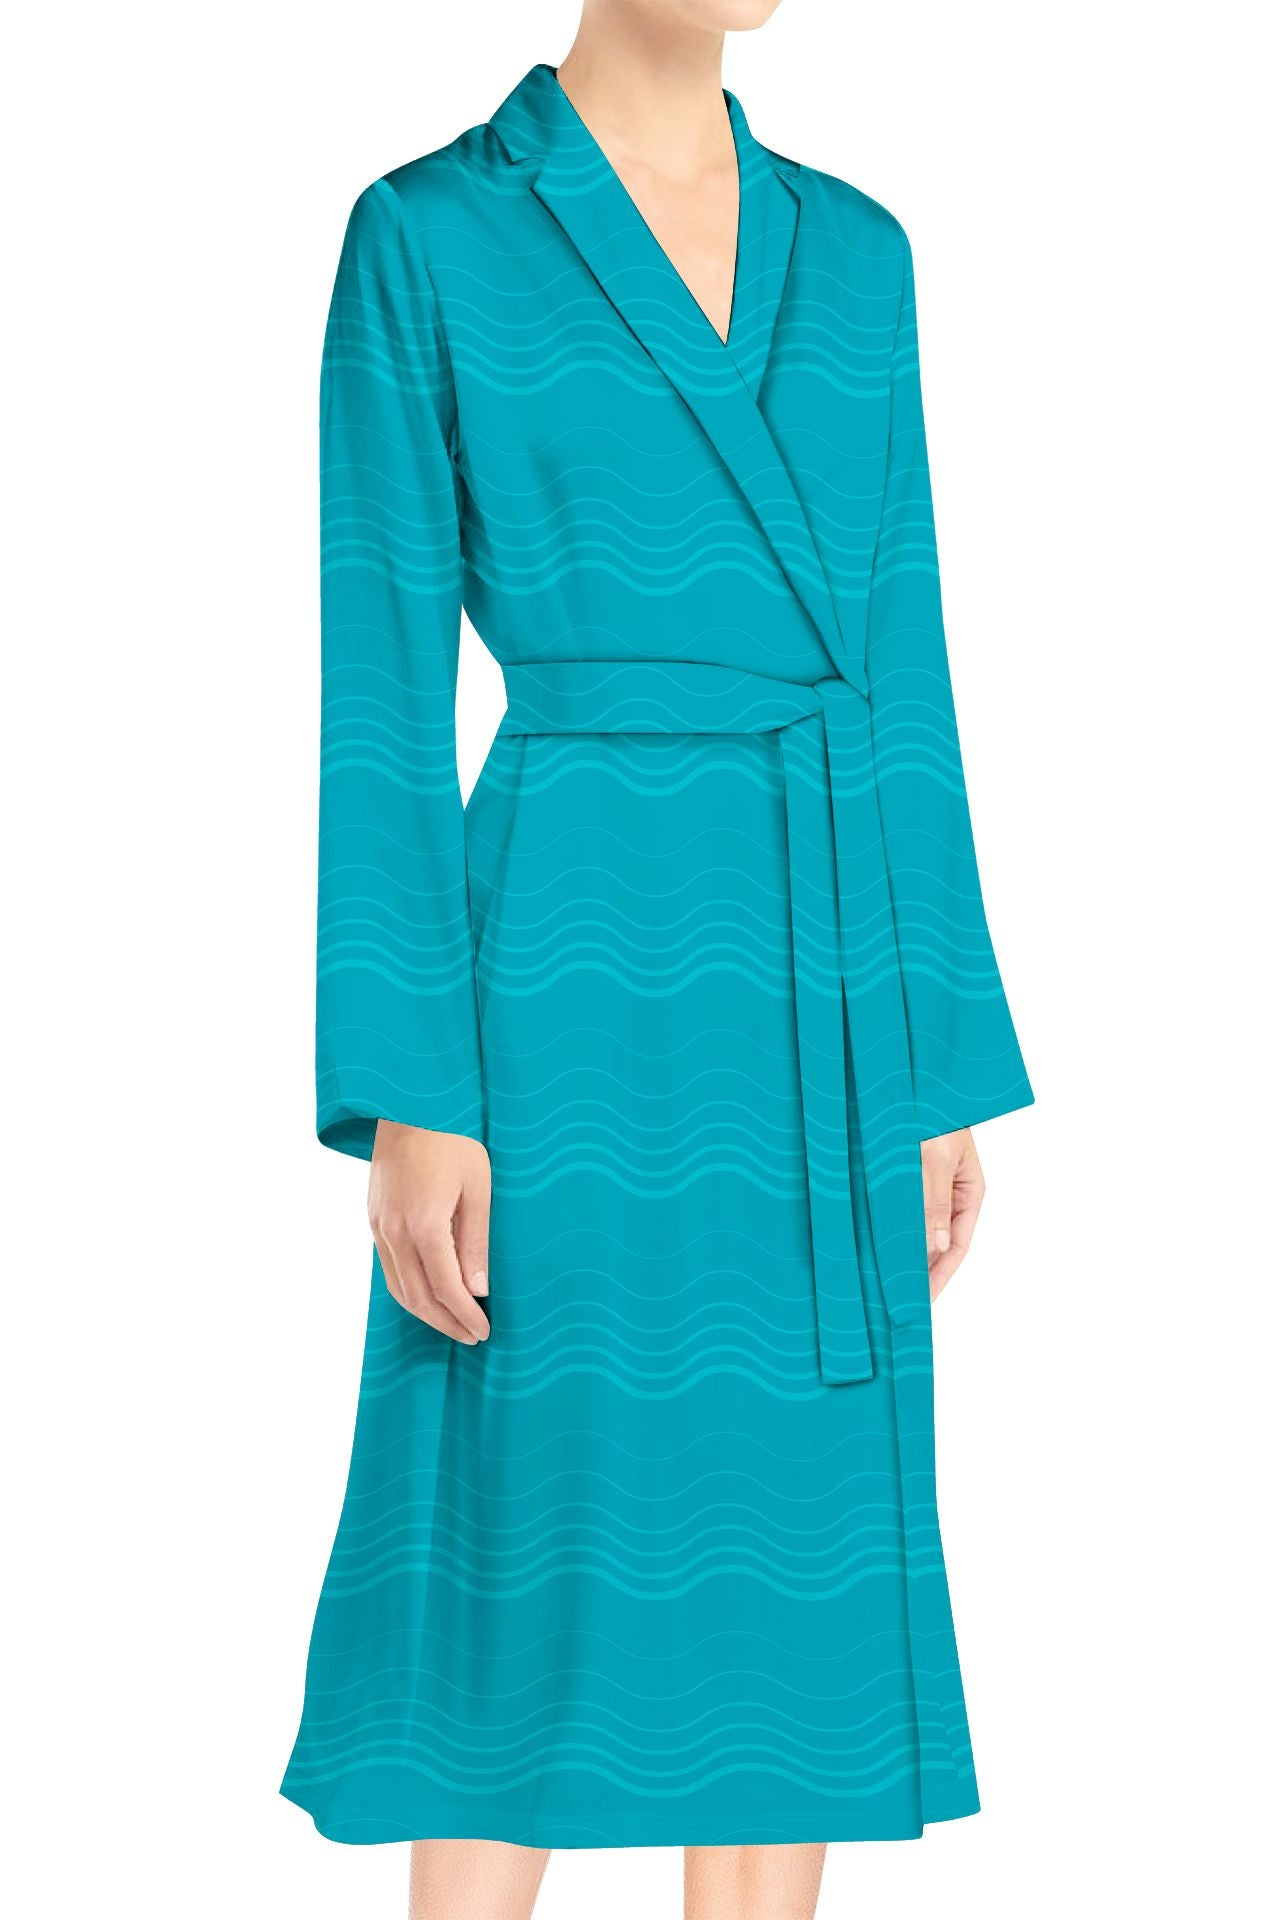 Silk Satin Wrap Midi Top  in Solid Aqua